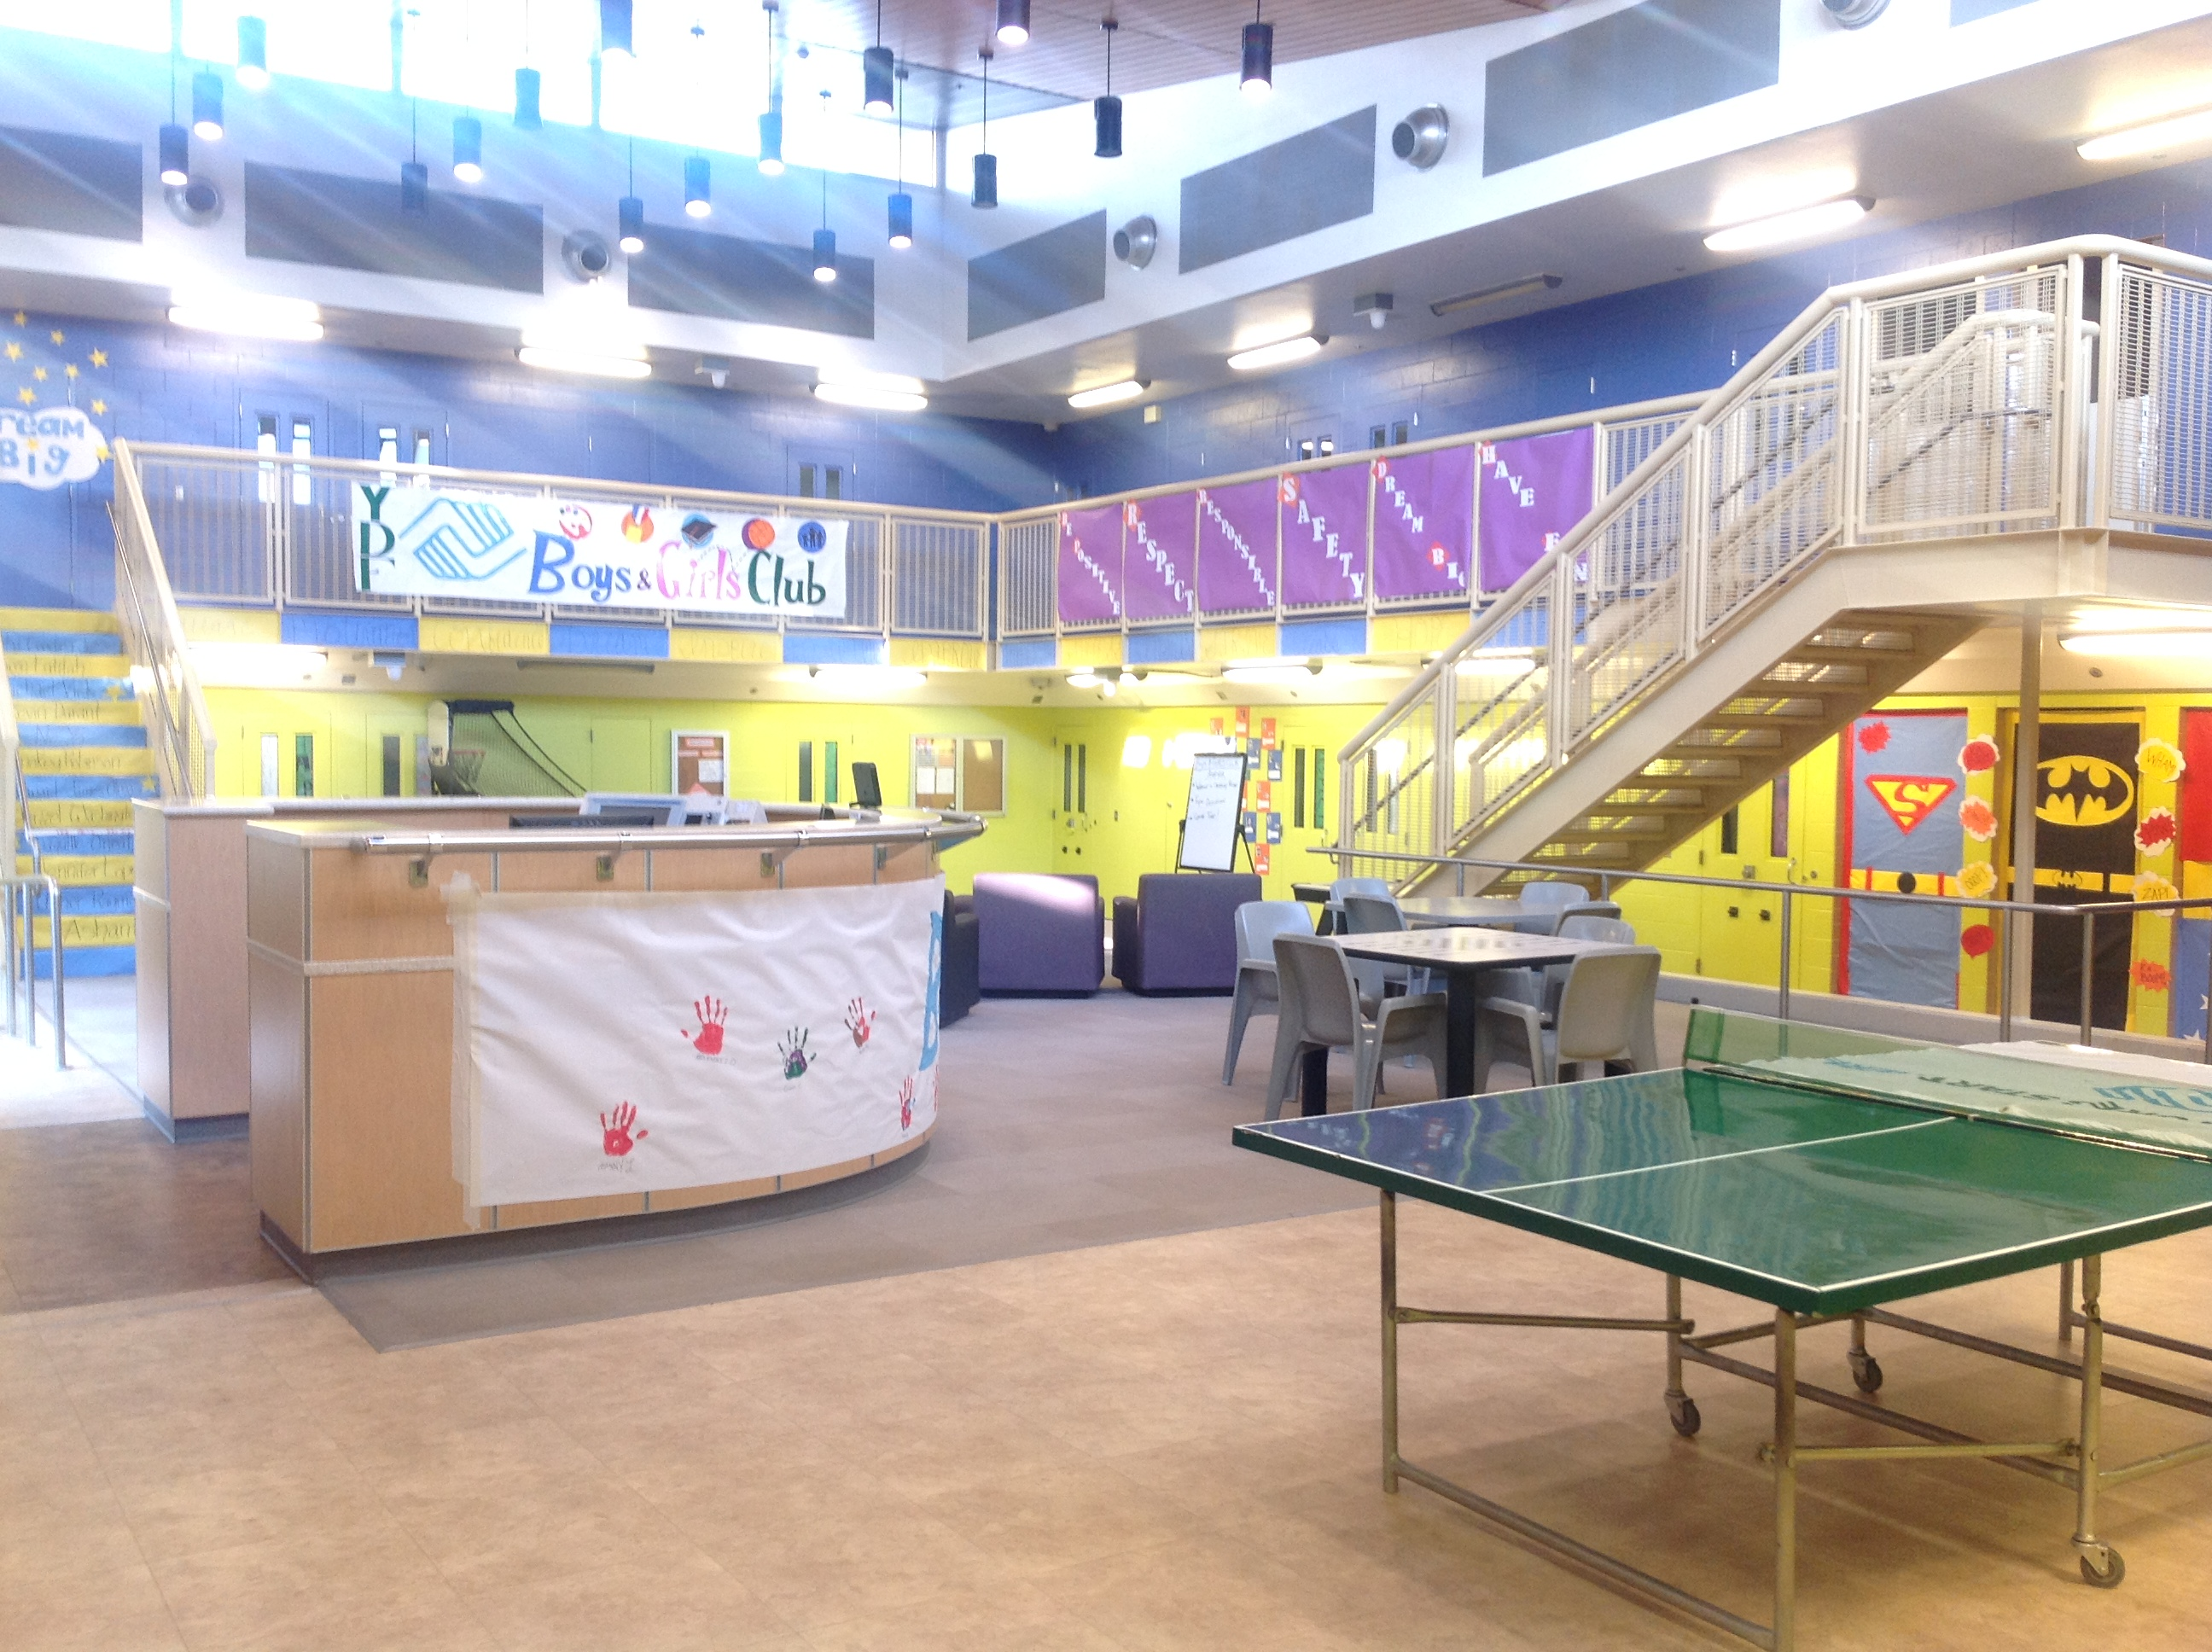 Youth Detention Facility Boys & Girls Club Chosen as Top 10 Finalist in National Contest